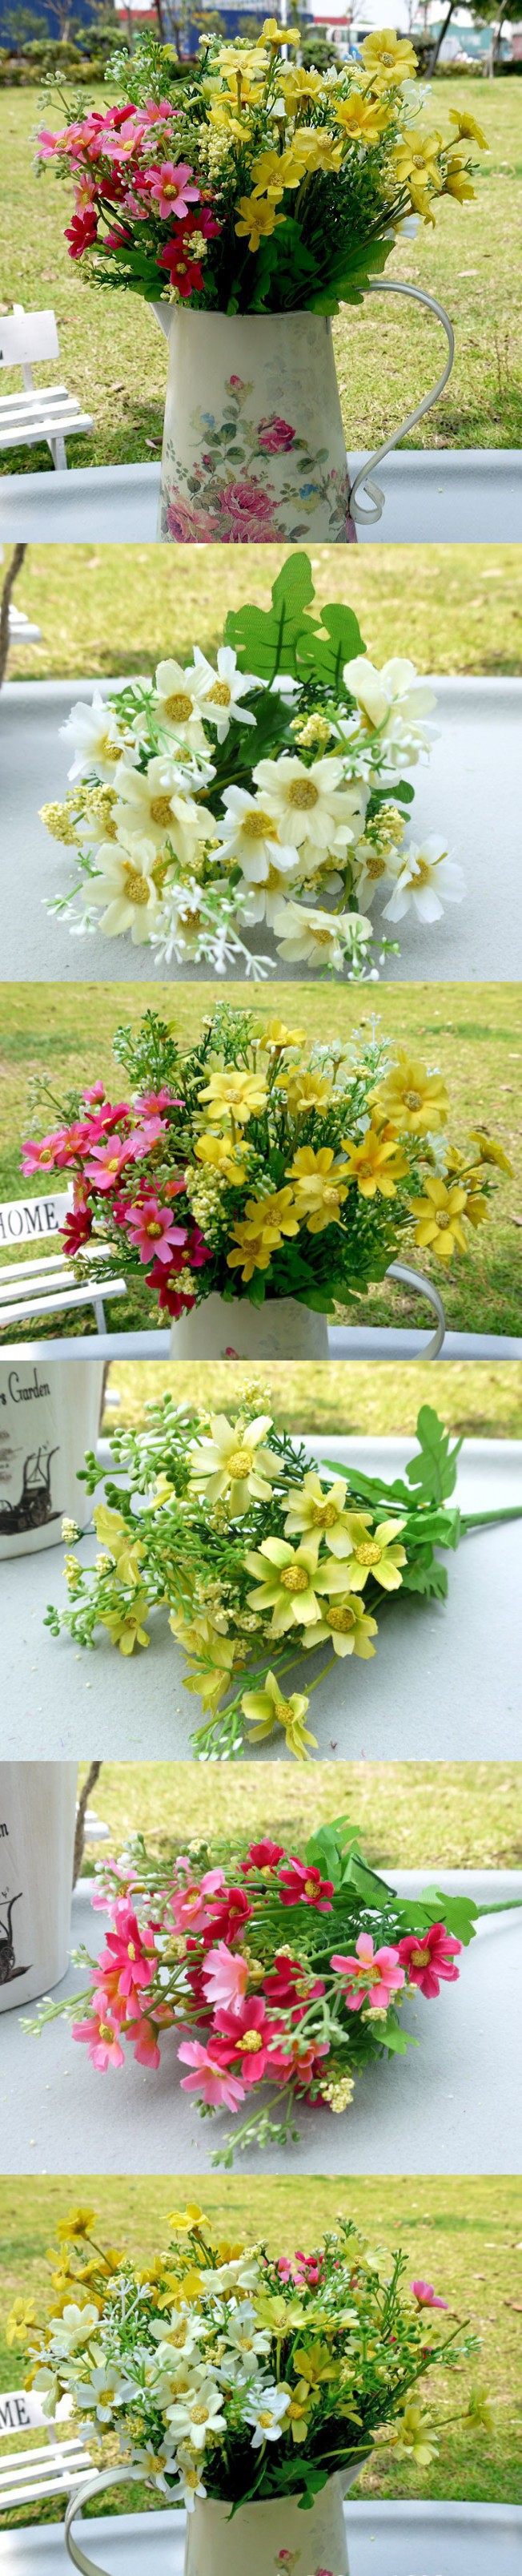 1pcs Free Shipping Silk Daisy Bouquet Artificial Daisy Flower Home